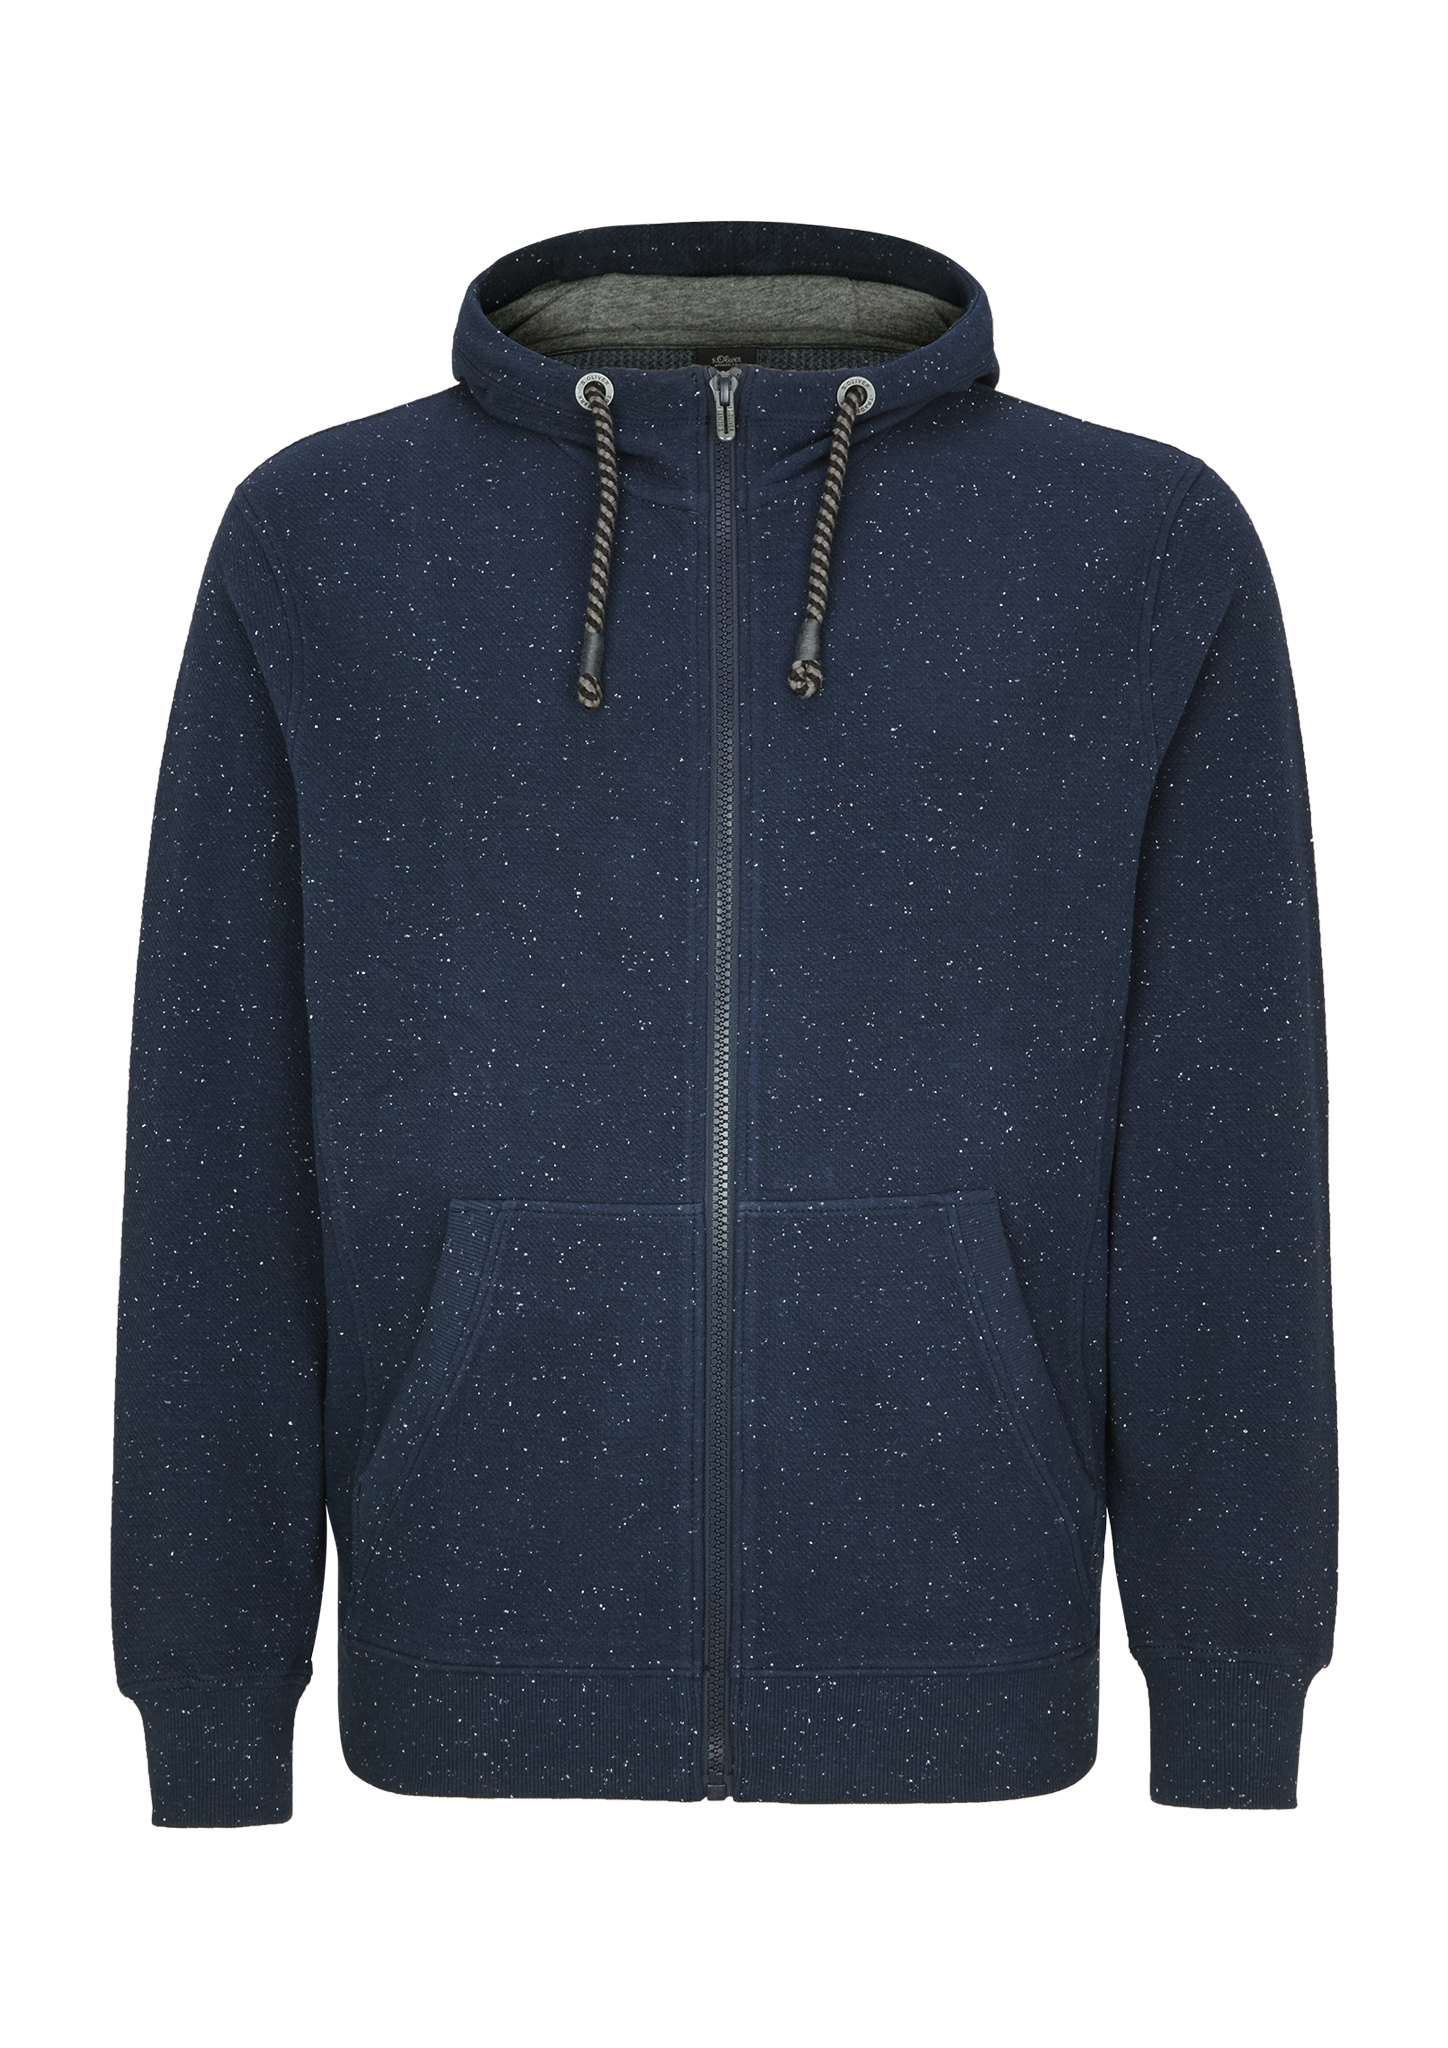 Sweatjacke | Bekleidung > Sweatshirts & -jacken > Sweatjacken | s.Oliver Men Big Sizes